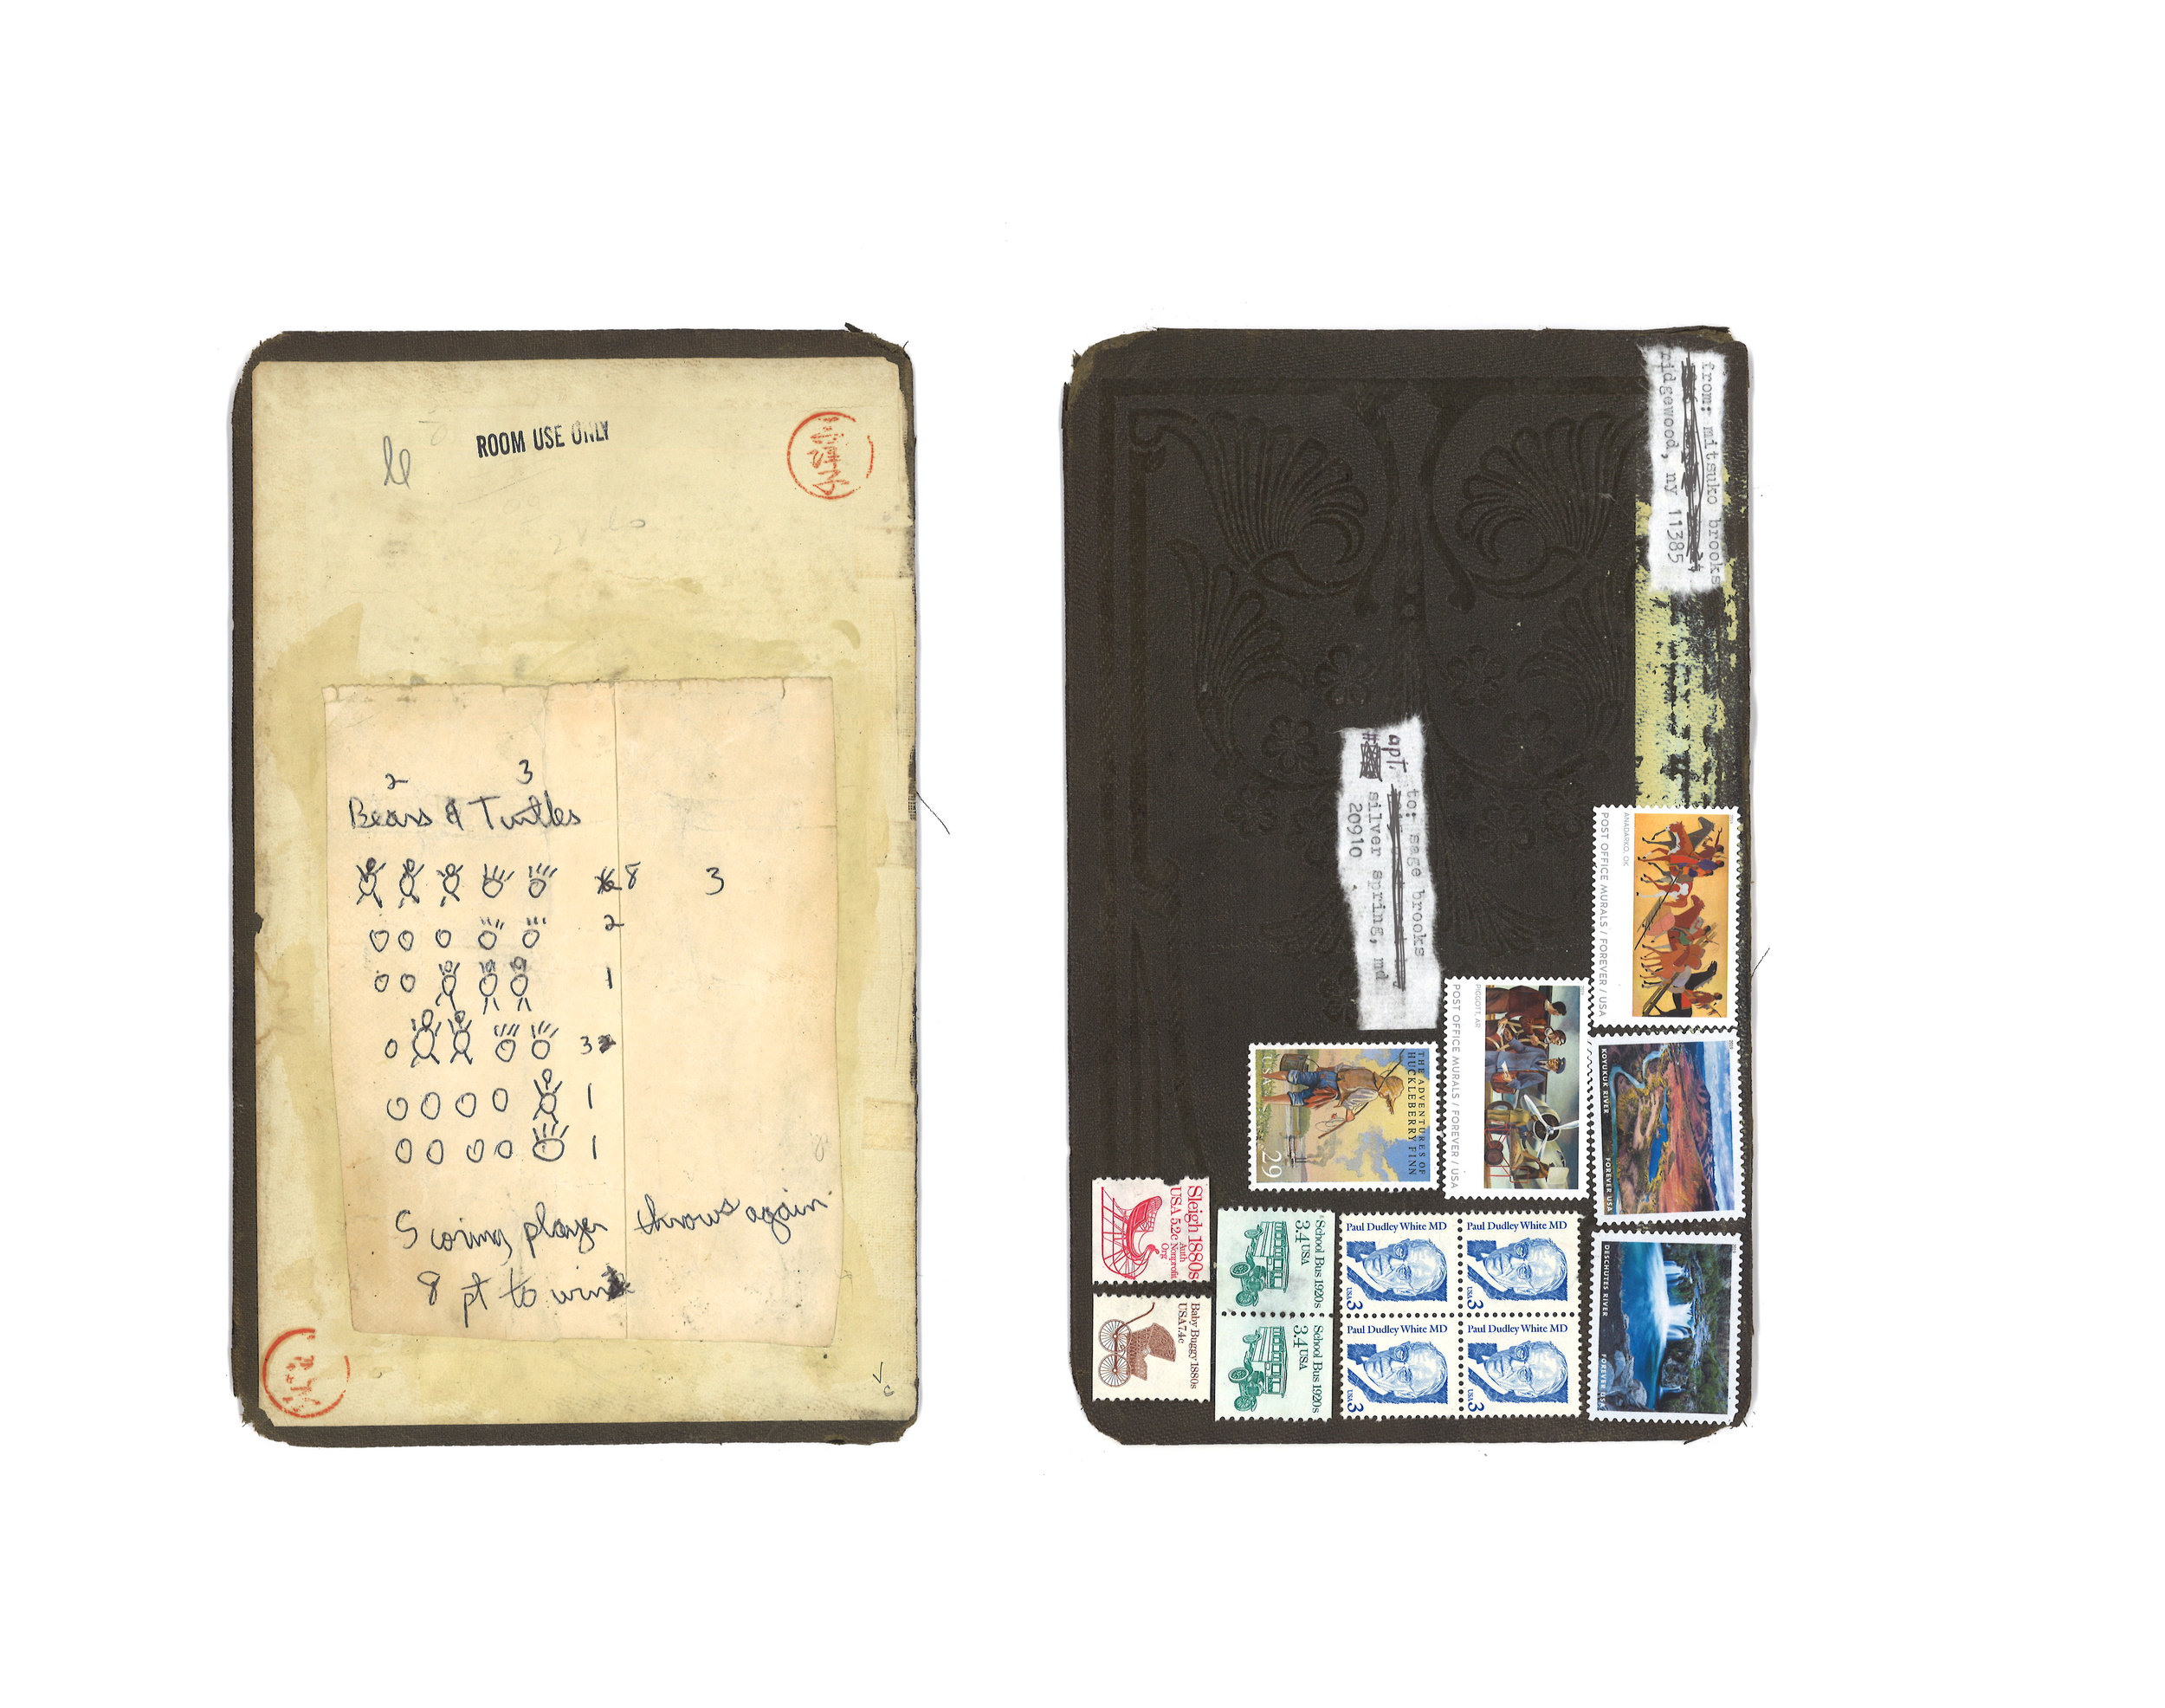 """Mail art to Sage Brooks postmarked Aug. 22, 2019"" [combined back and front]  5"" x 7""  Discarded book cover, stamps, rice paper, typewriter ink, scoring notes by father."